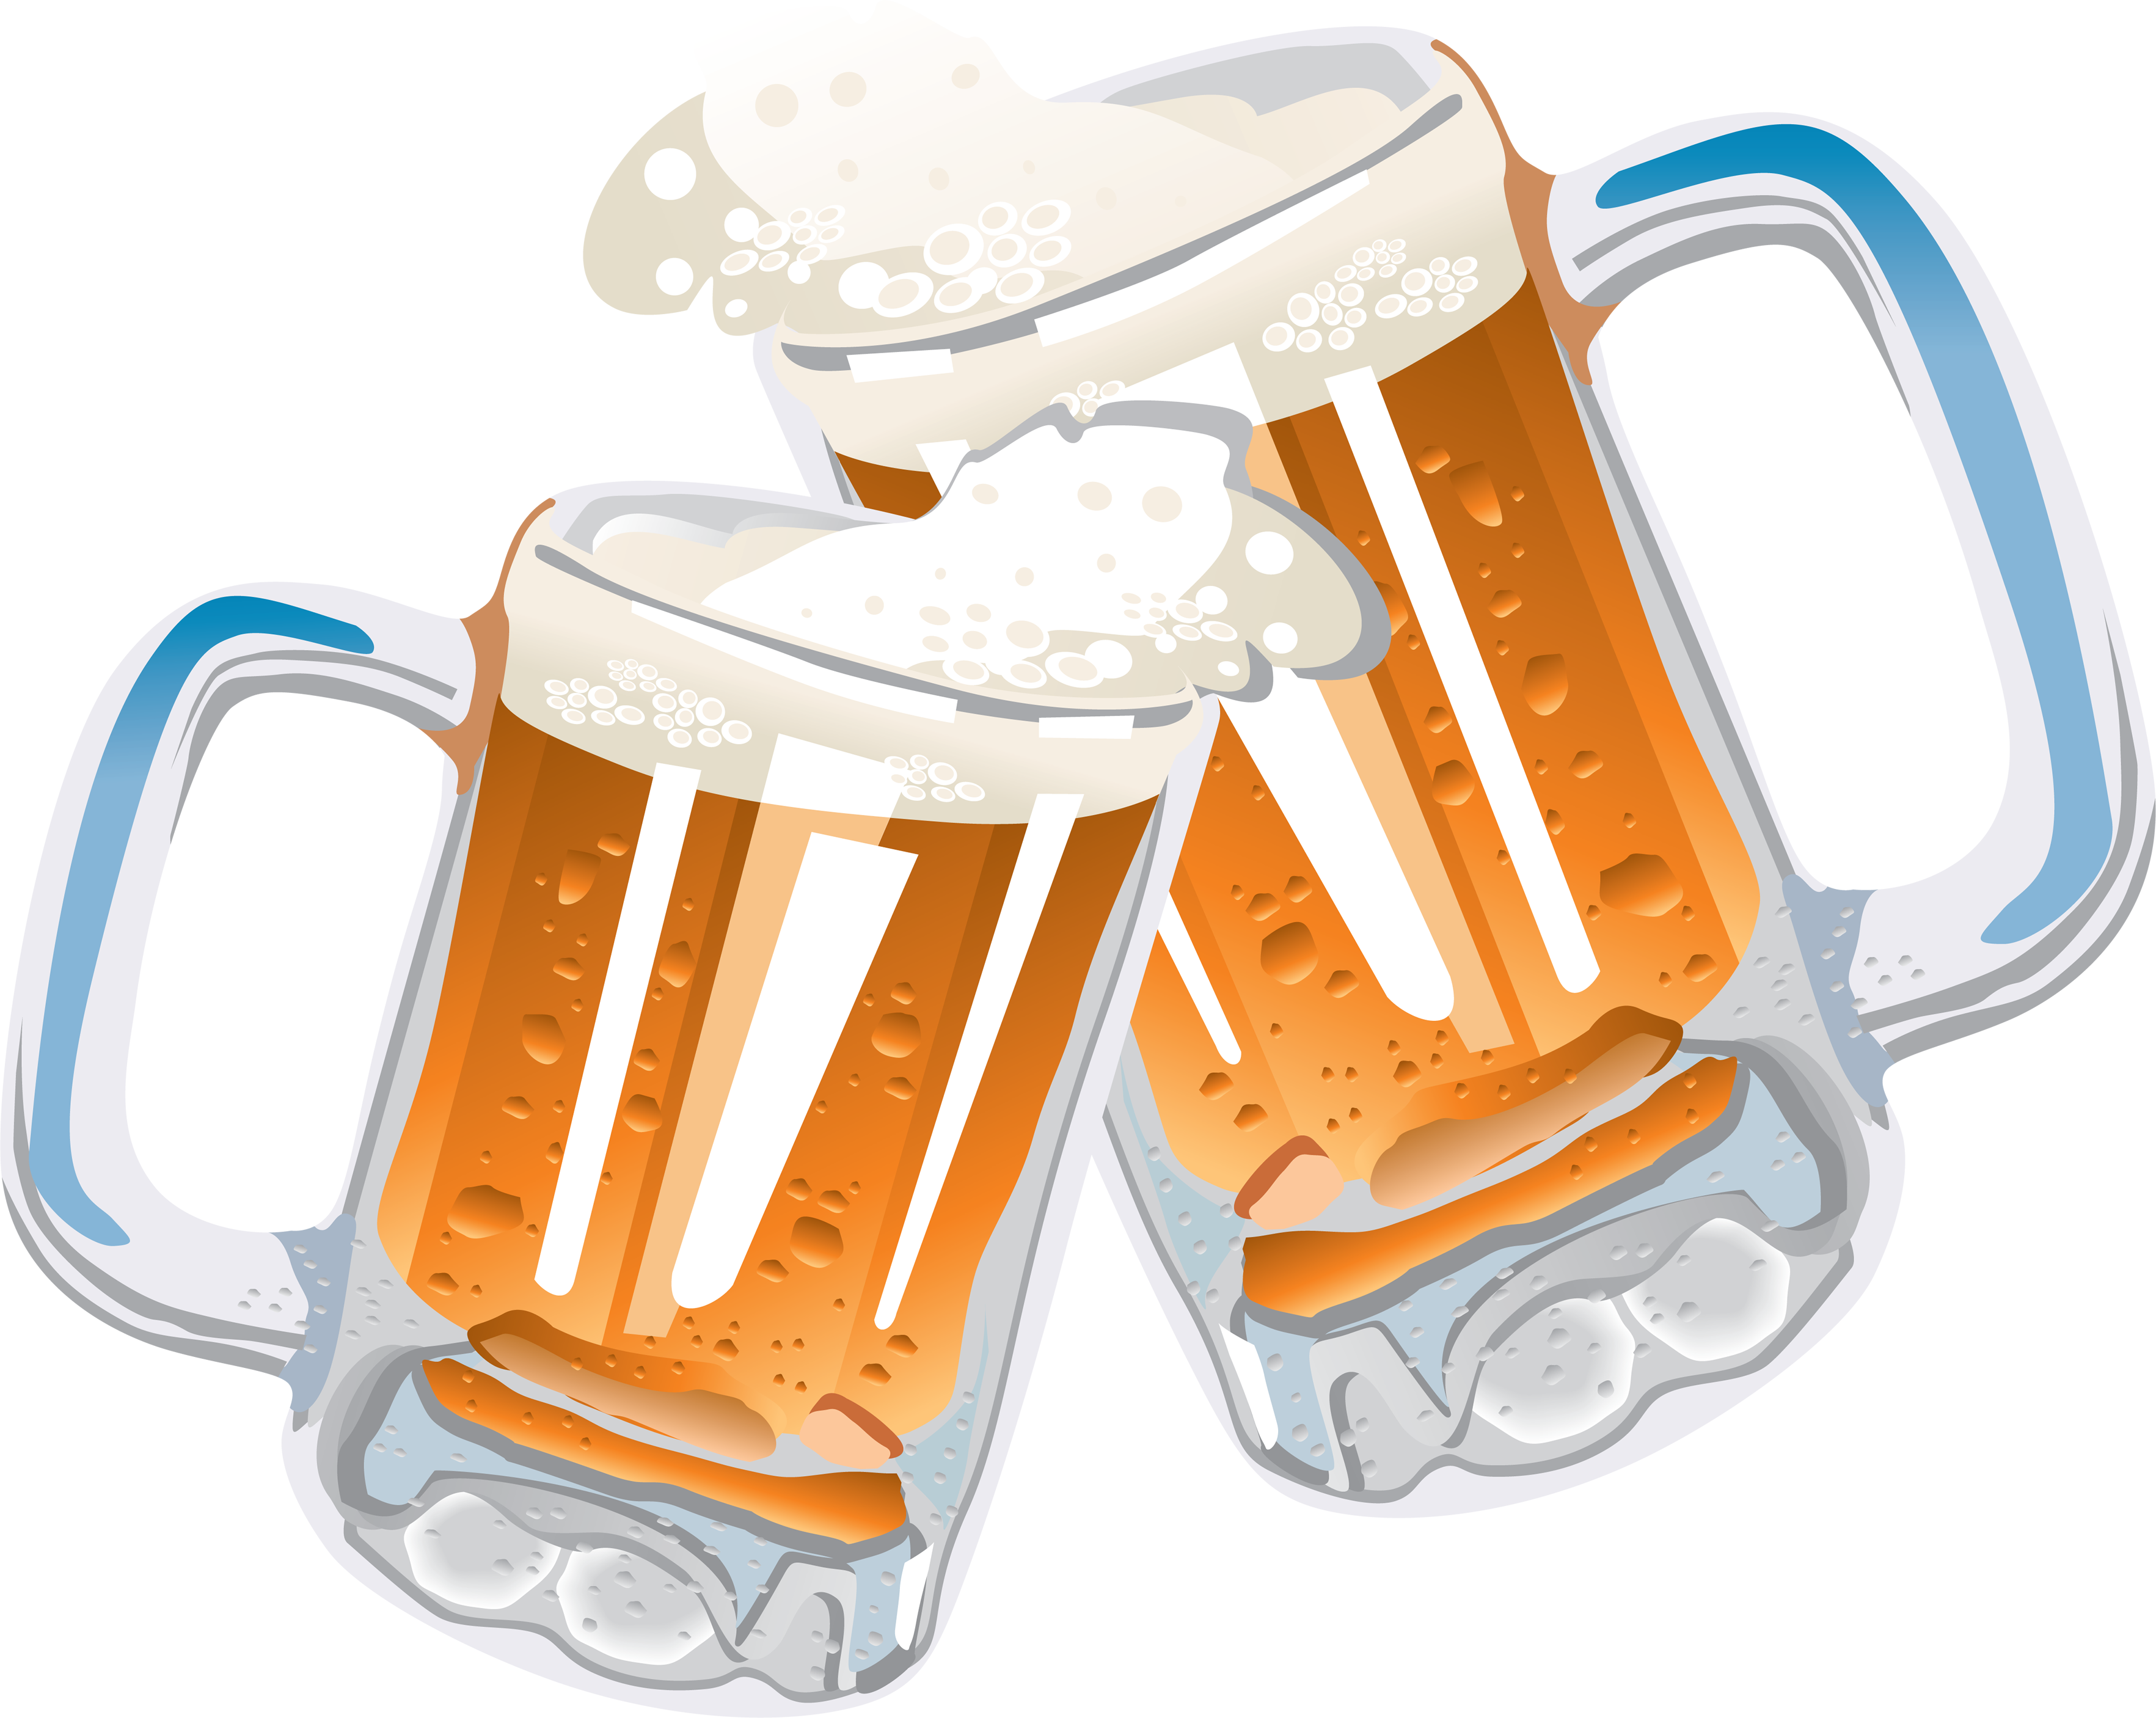 Png images free pictures. Cups clipart beer